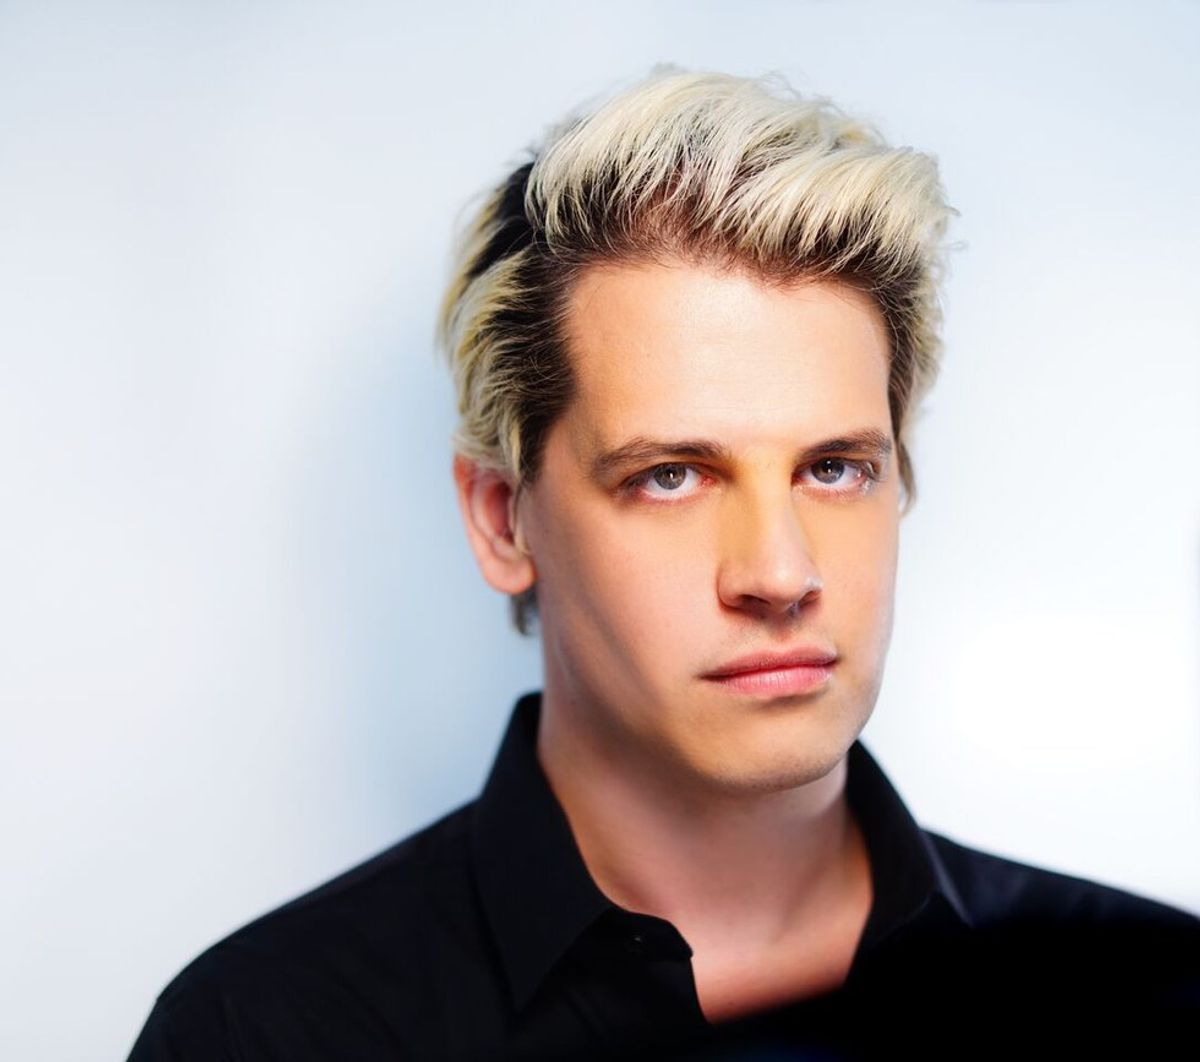 Milo Yiannpoulous And The Crazy World Of Twitter